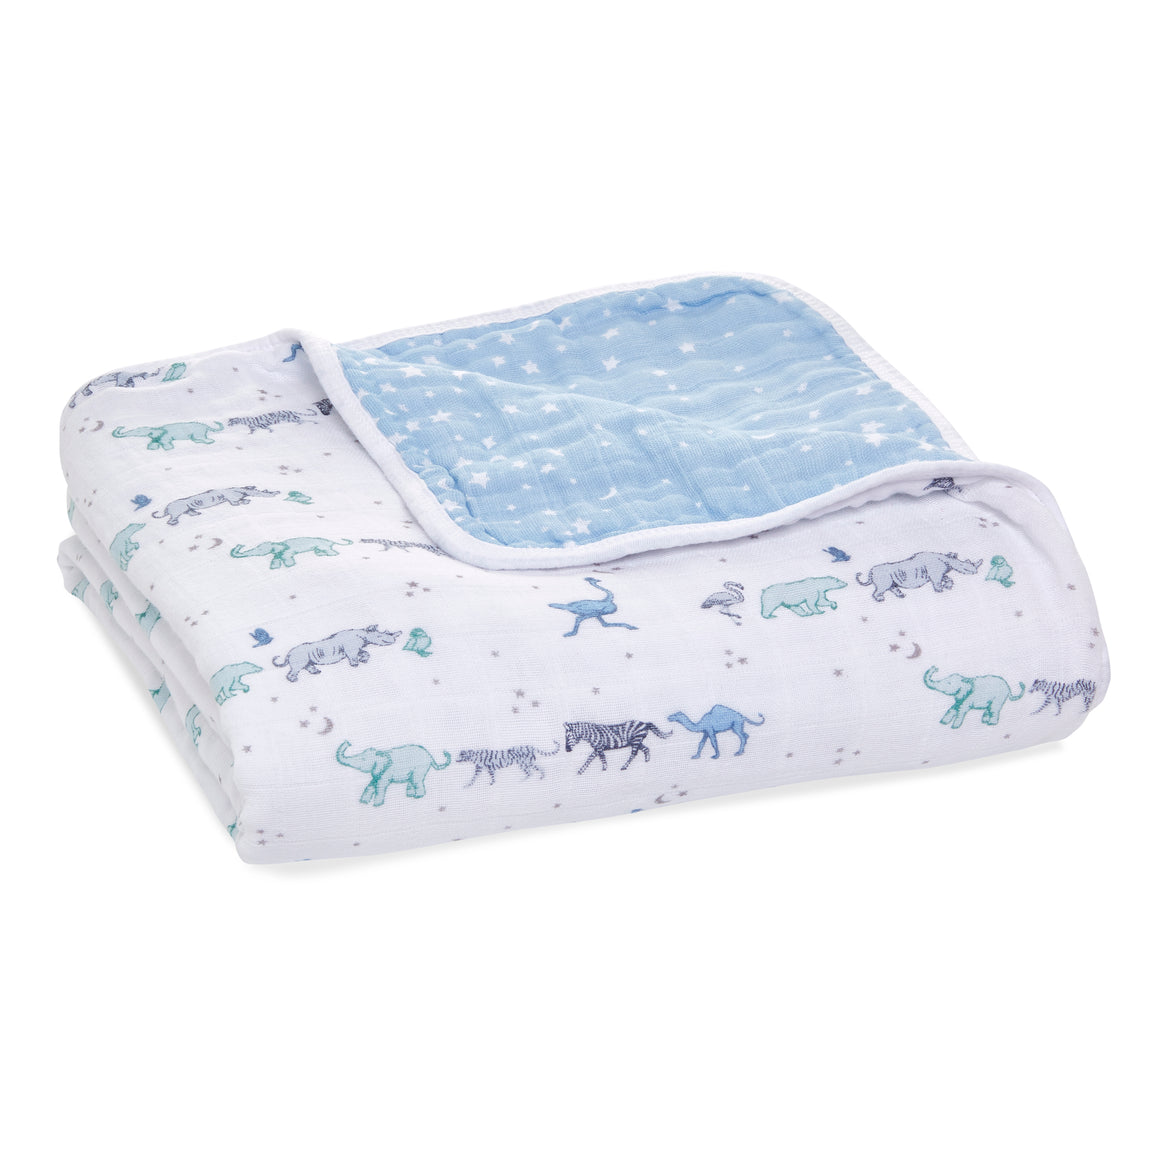 aden + anais Rising Star Follow the Stars classic dream blanket